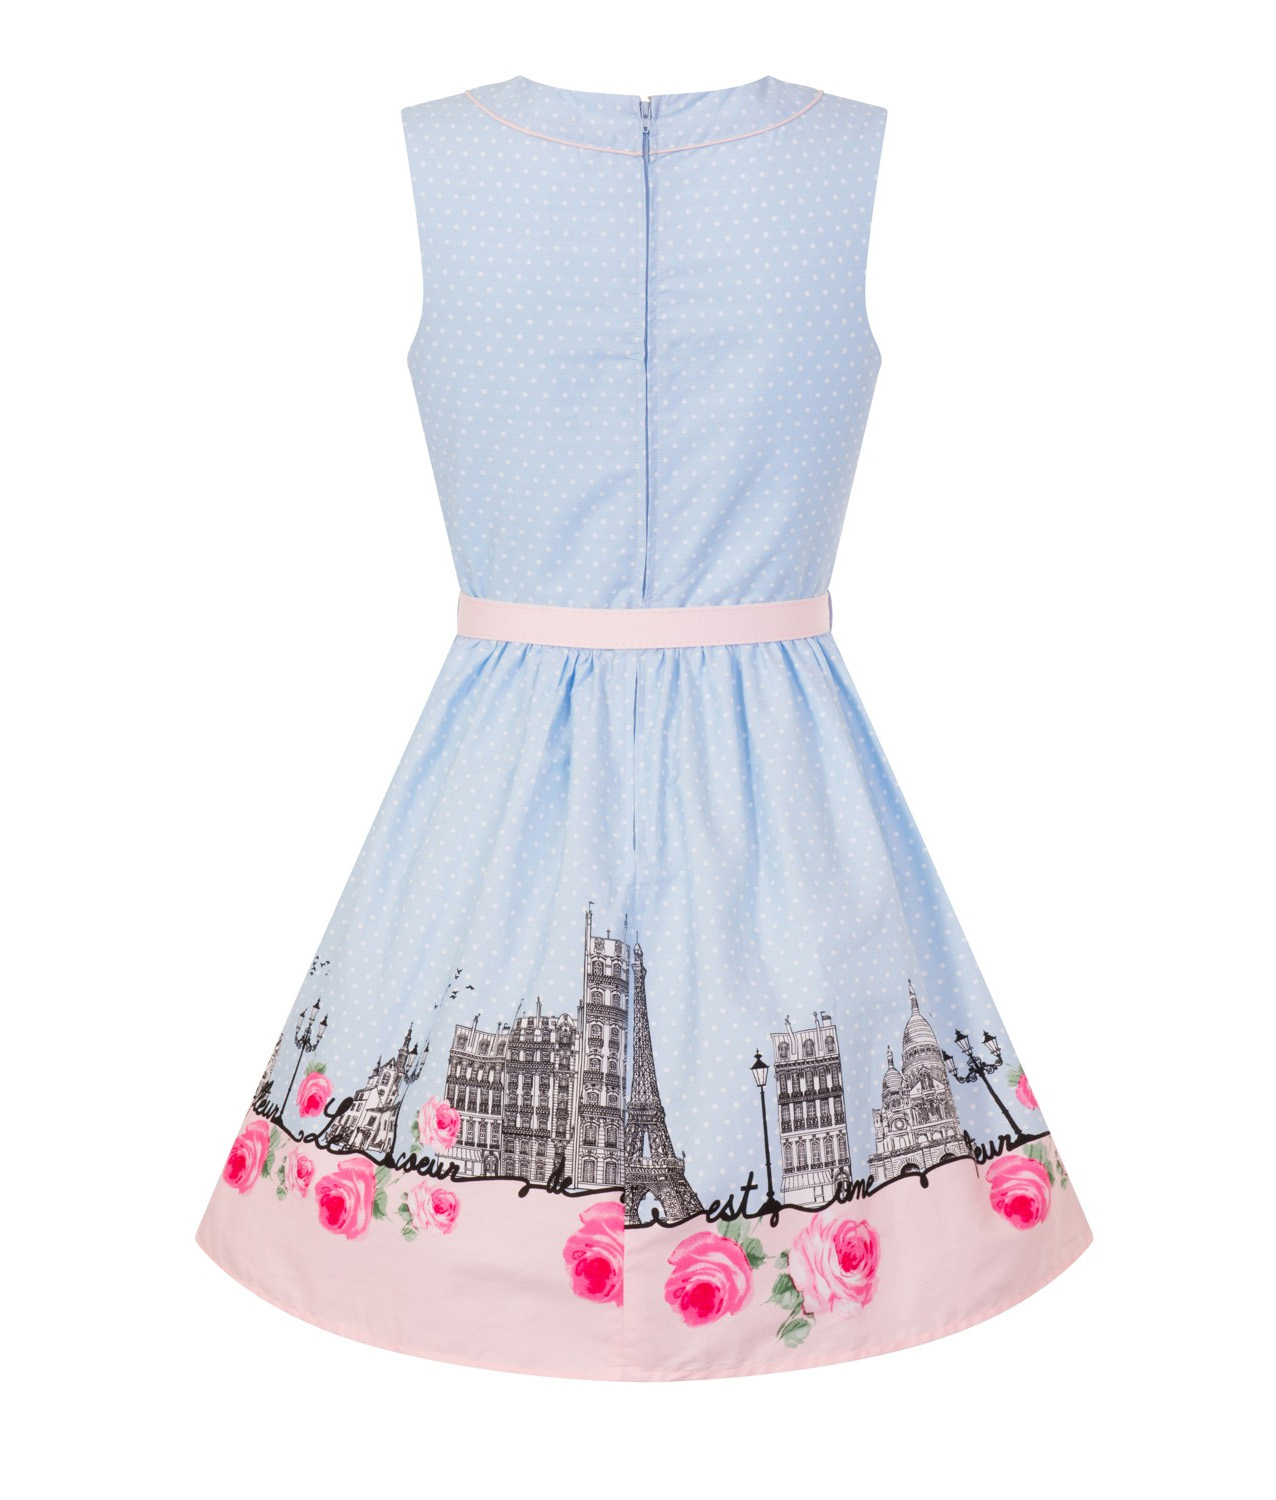 Hell-Bunny-50s-Vintage-Blue-Polka-Dot-PANAME-Mini-Dress-Paris-All-Sizes thumbnail 37